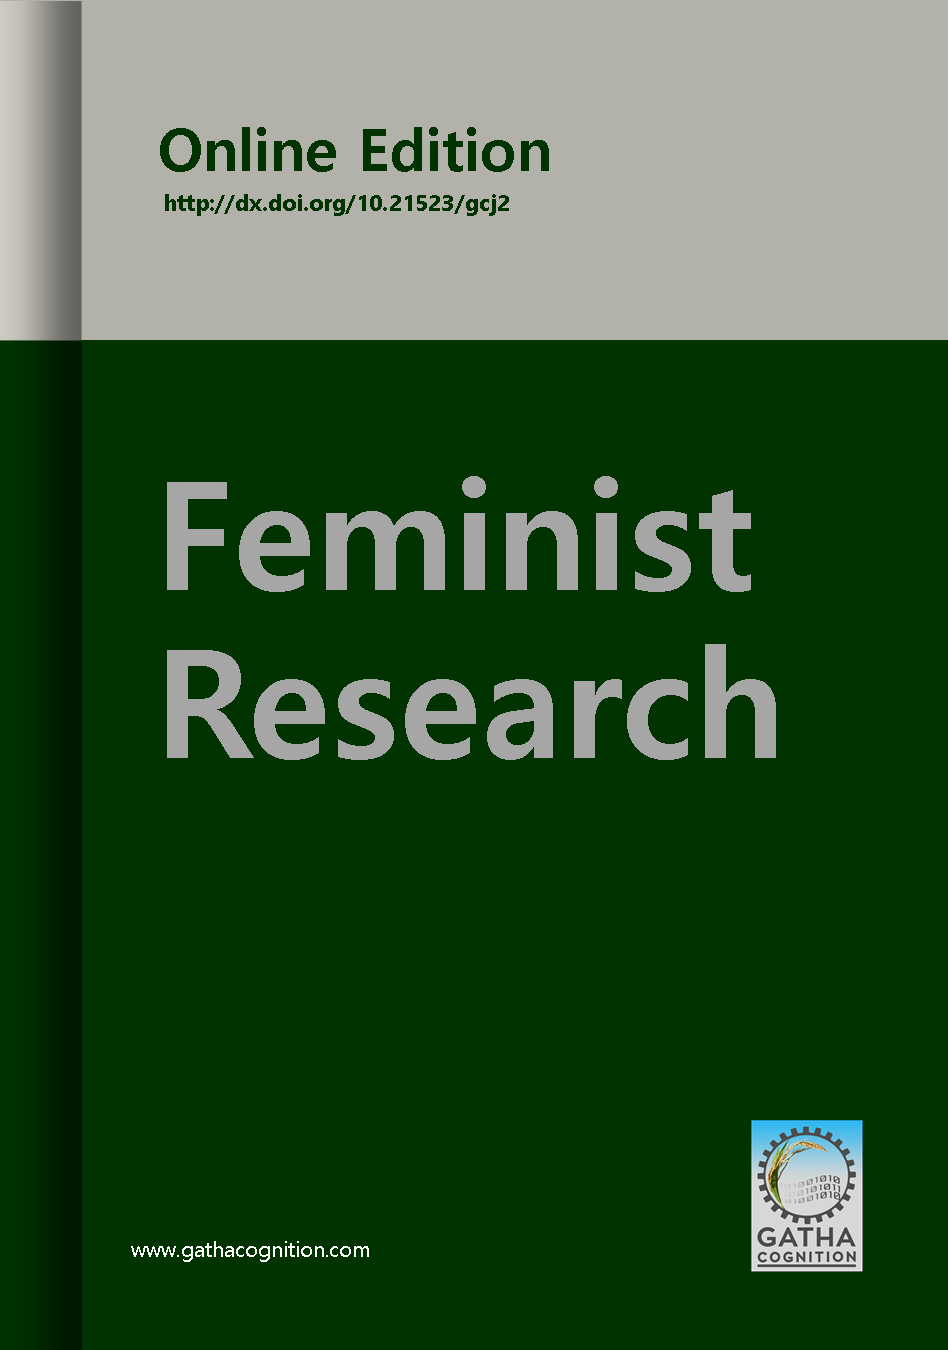 Assessment of Regional Inequality in Female Work Participation: Measurement of Disparity and Determinants